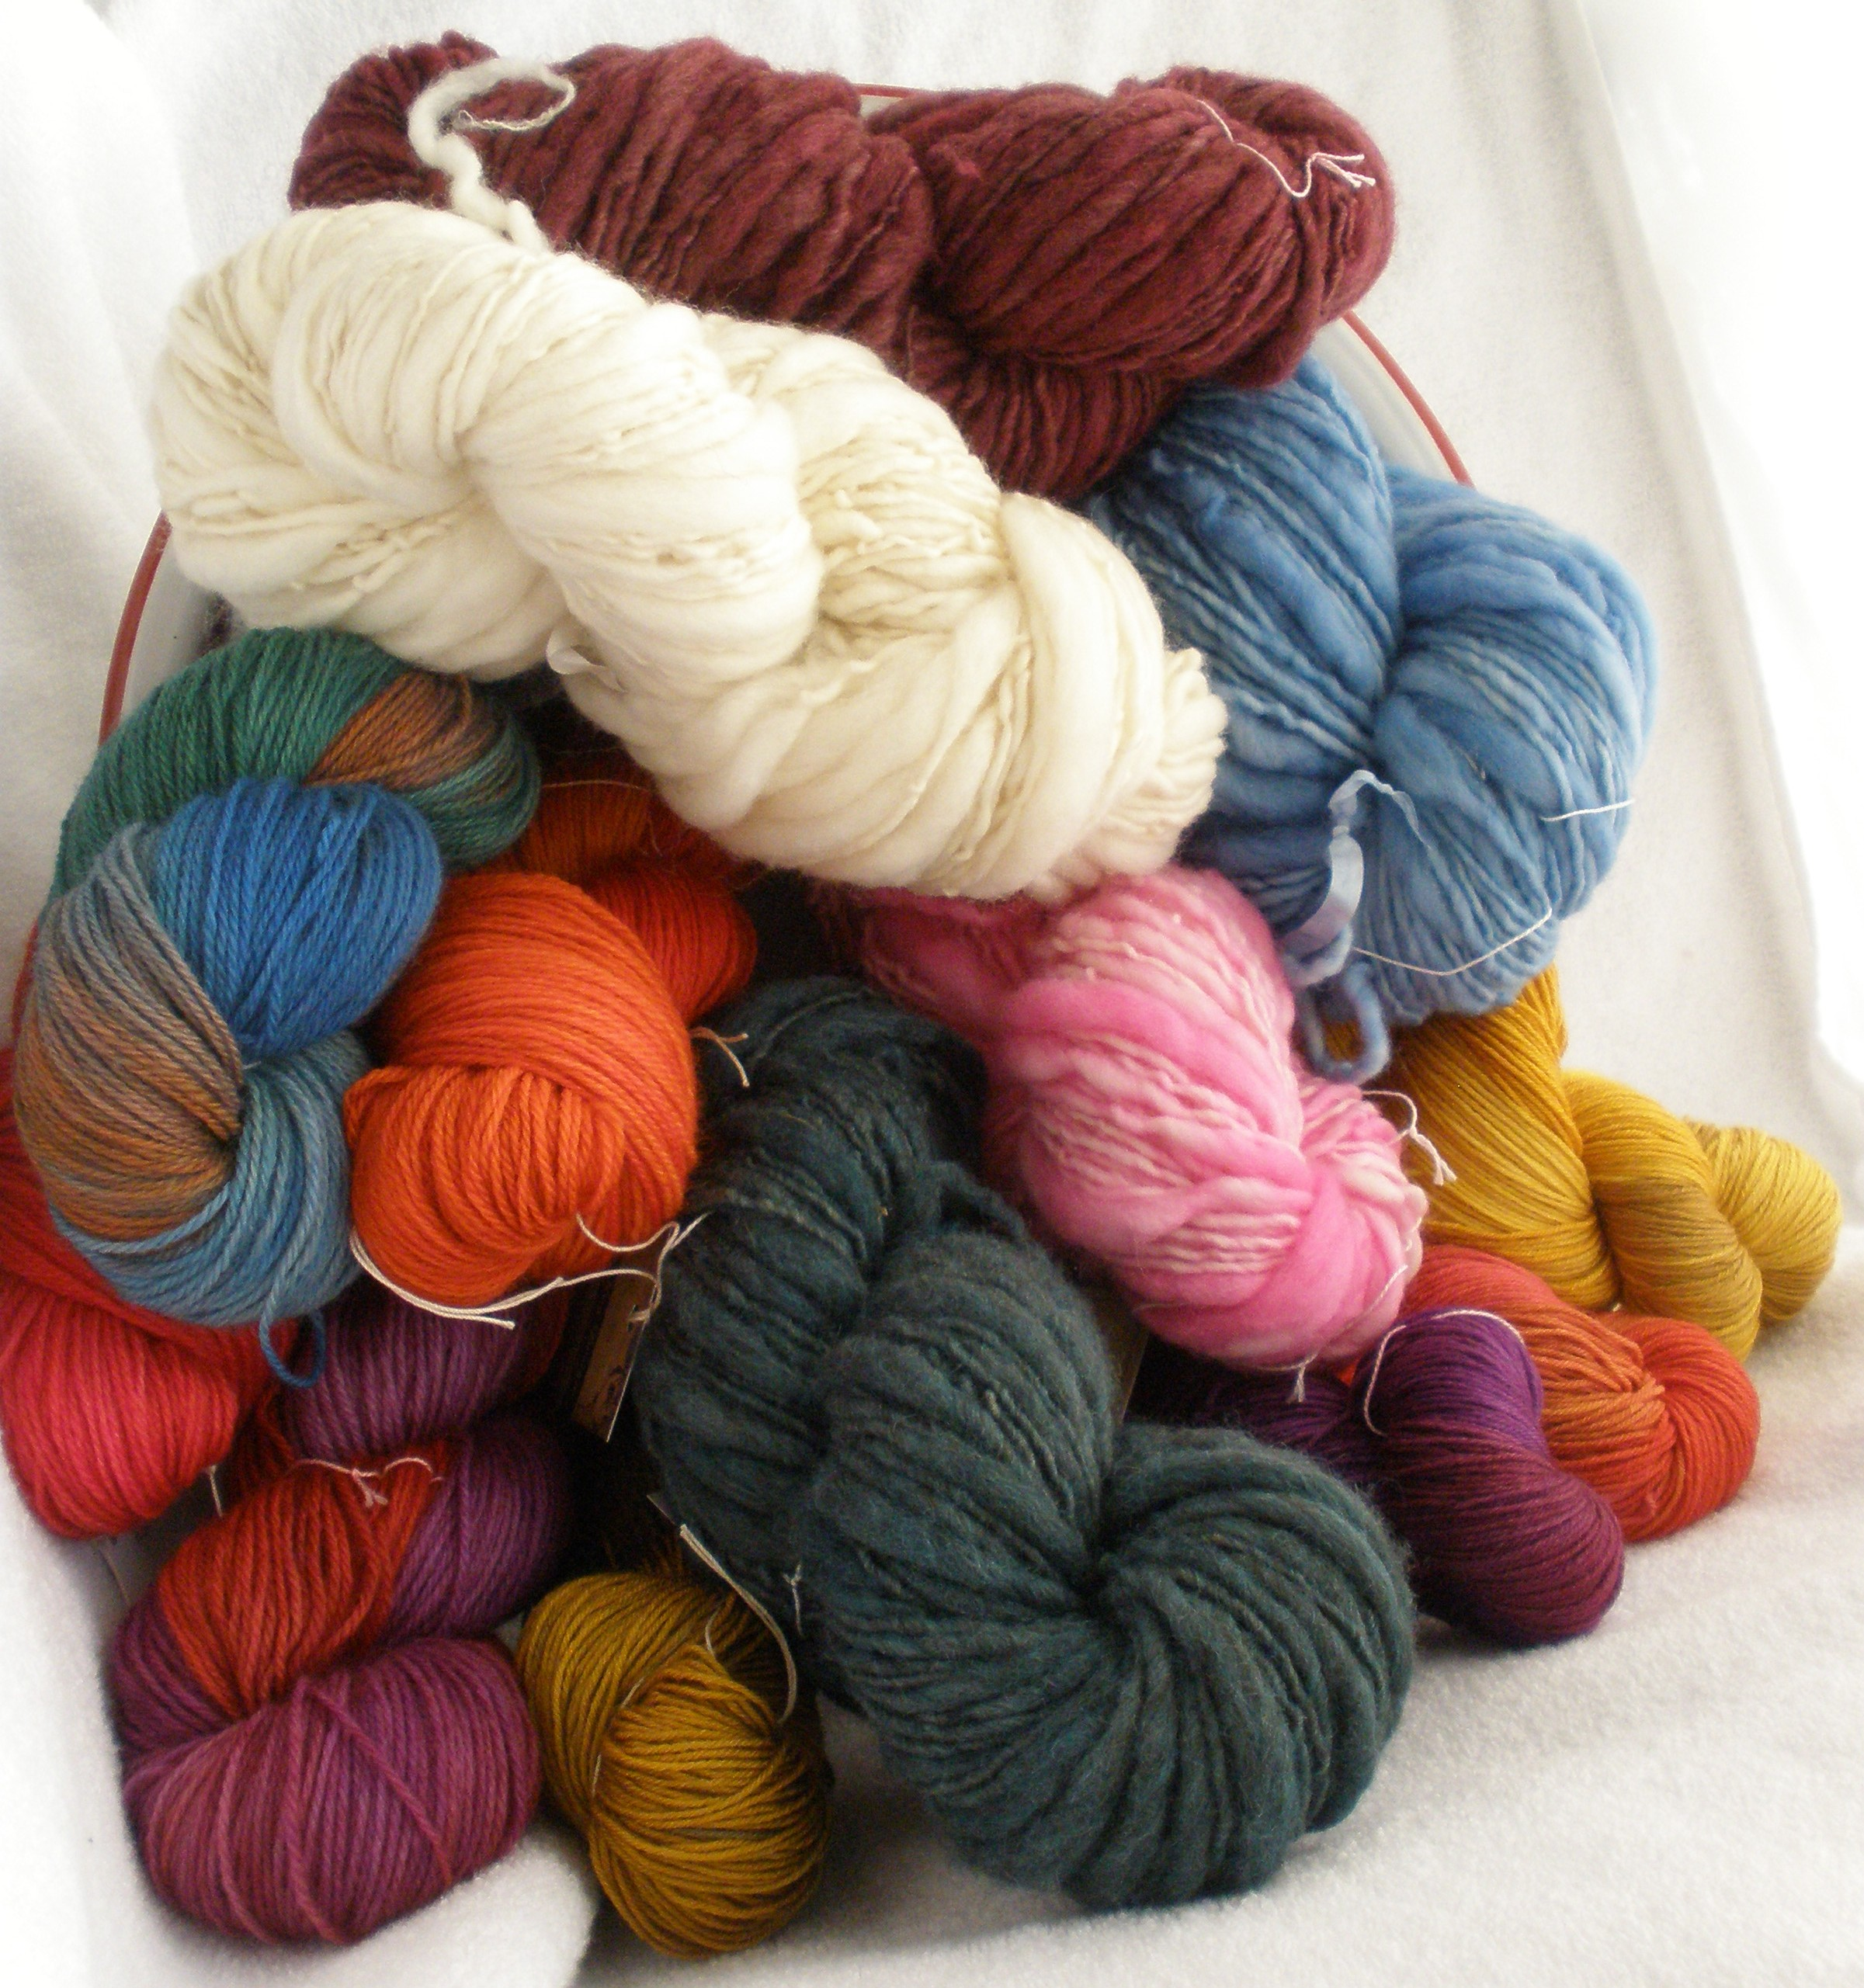 handspun and / or hand dyed yarn